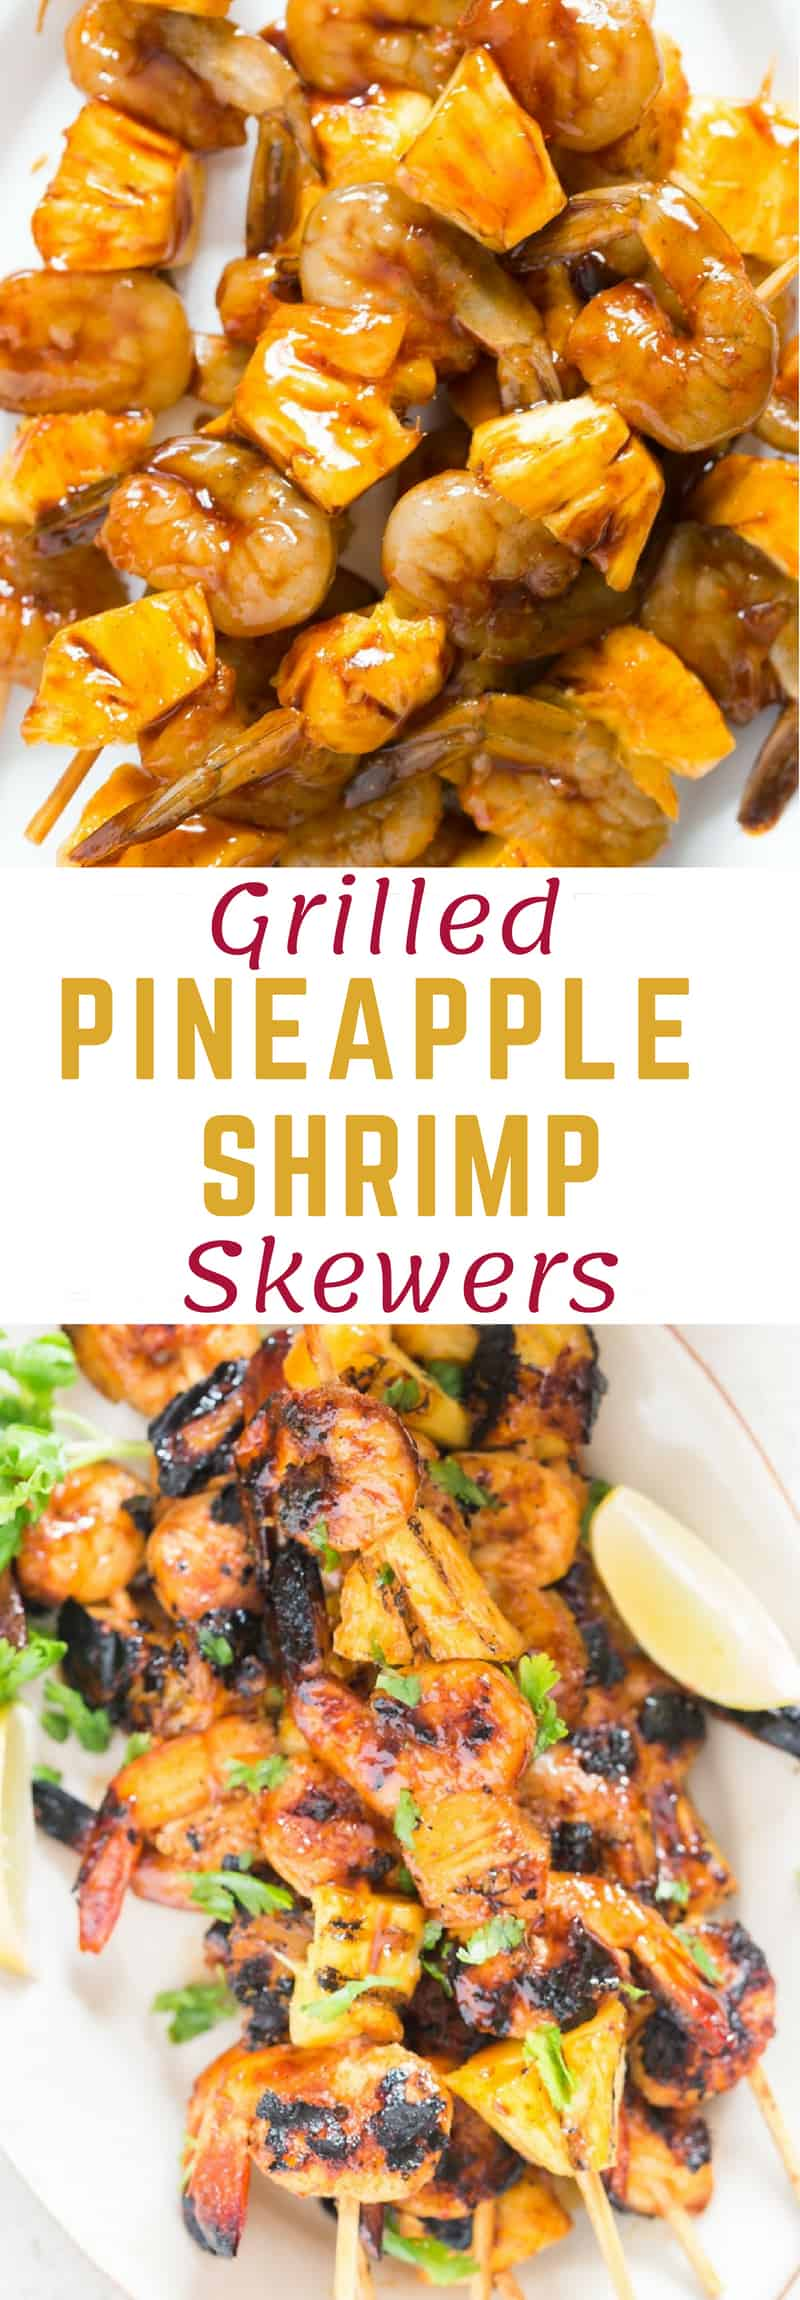 Teriyaki grilled pineapple shrimp skewers – a FAST and EASY finger food appetizer with great ASIAN flavors that can go easily on a meal prep box alongside some rice. There is a perfect shrimp skewers marinade in this recipe to jazz up the pineapple and shrimps.